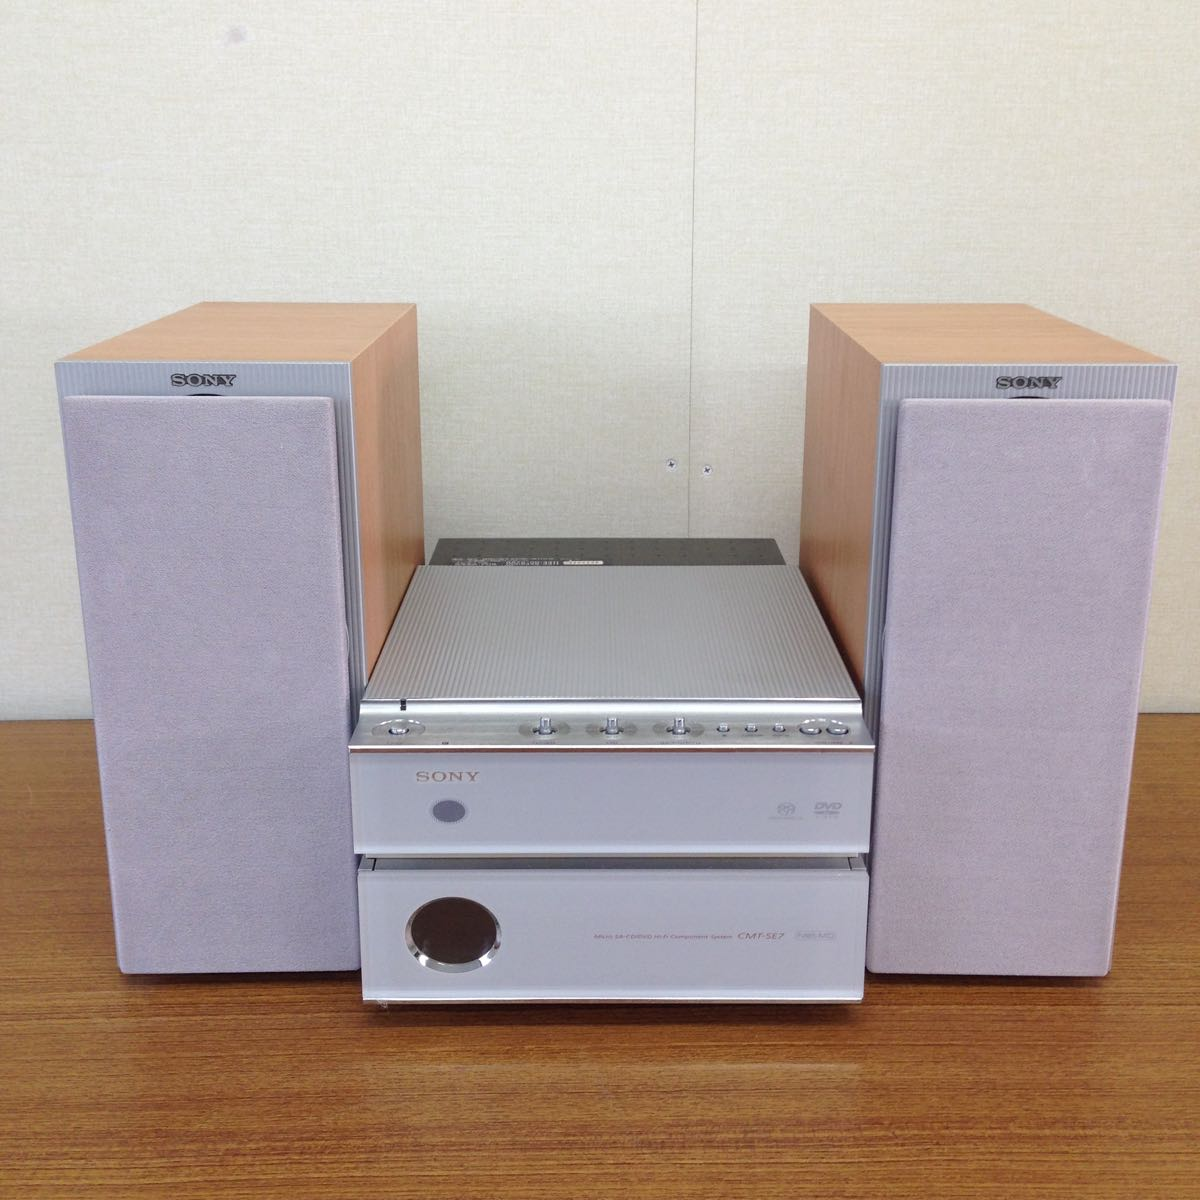 sony cmt se7 super audio cd dvd md player wyy02a real yahoo auction salling sony cmt se7 super audio cd dvd md